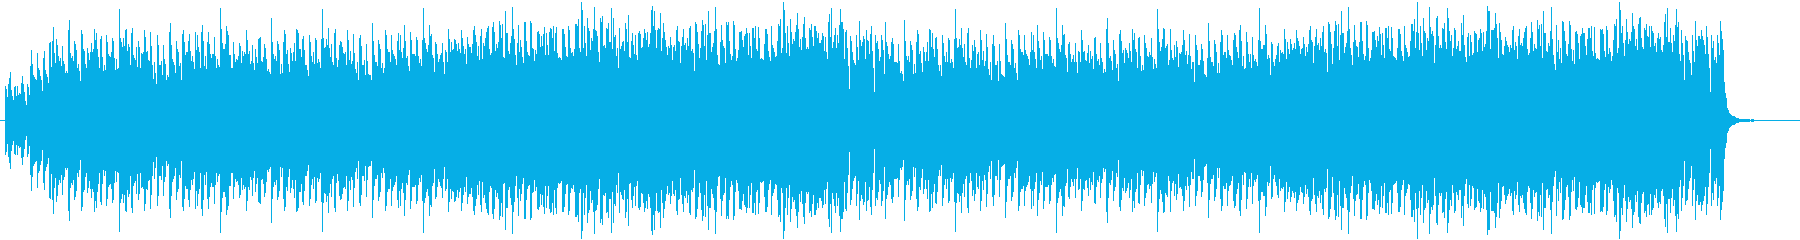 Company / school introduction BGM that makes you feel hope's reproduced waveform